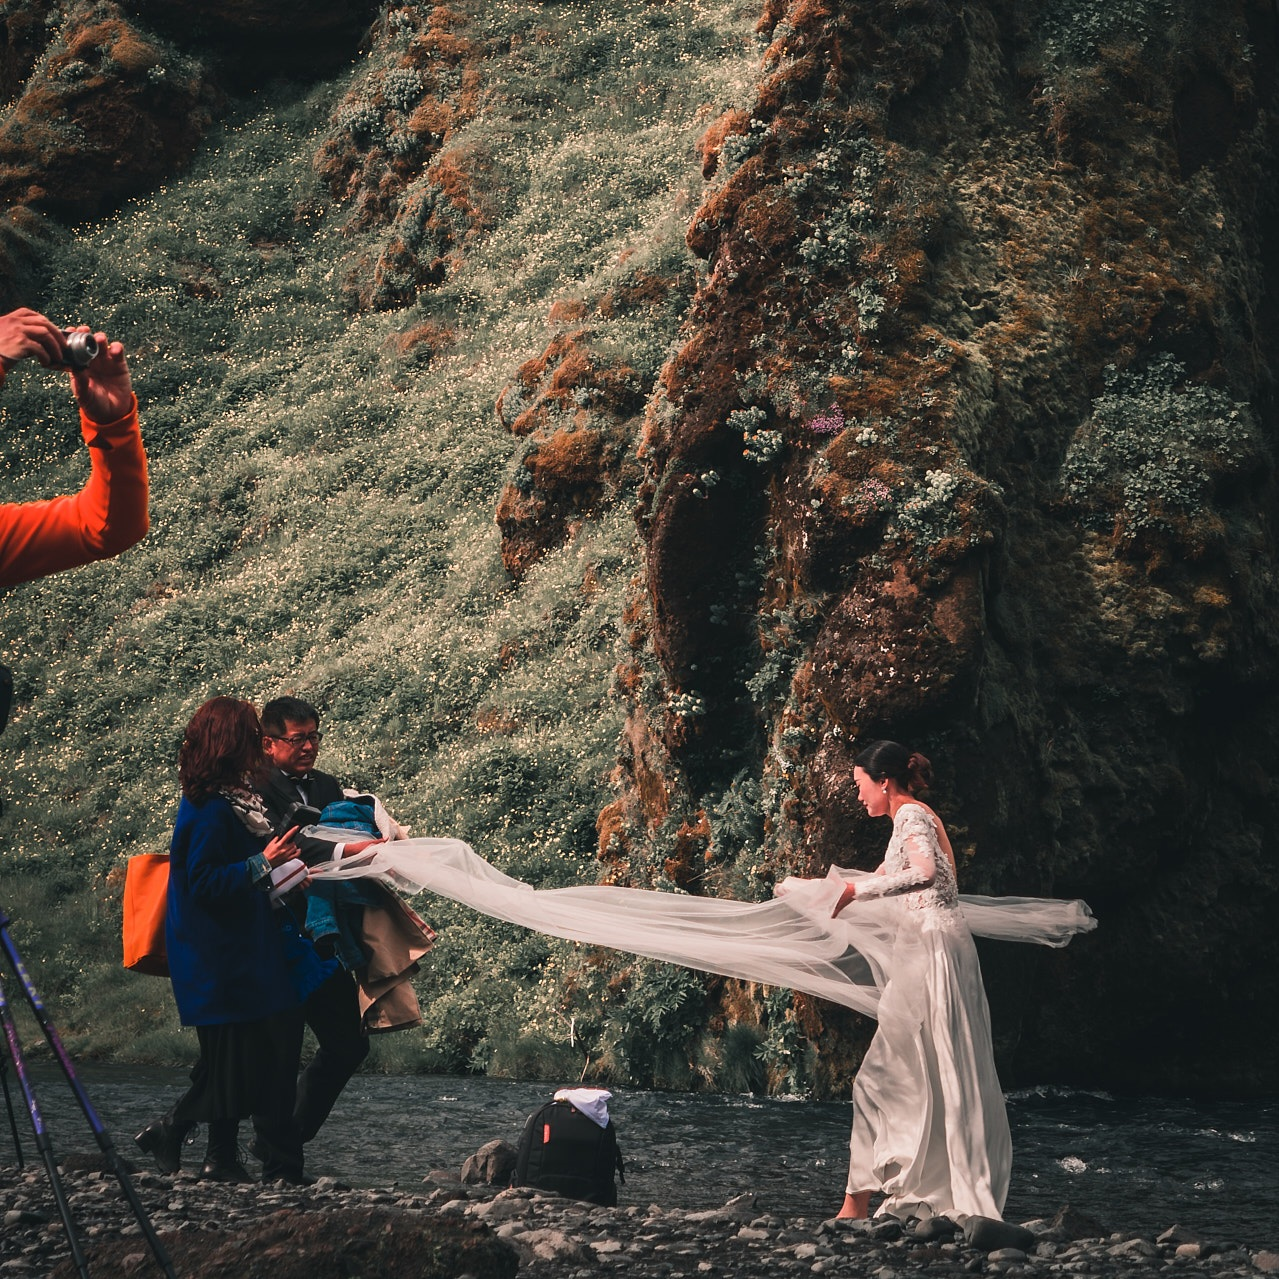 Destination Wedding Photography in Iceland Pristine View Photography - Wedding Photographer Bedfordshire, Hertfordshire, London and surrounding areas.